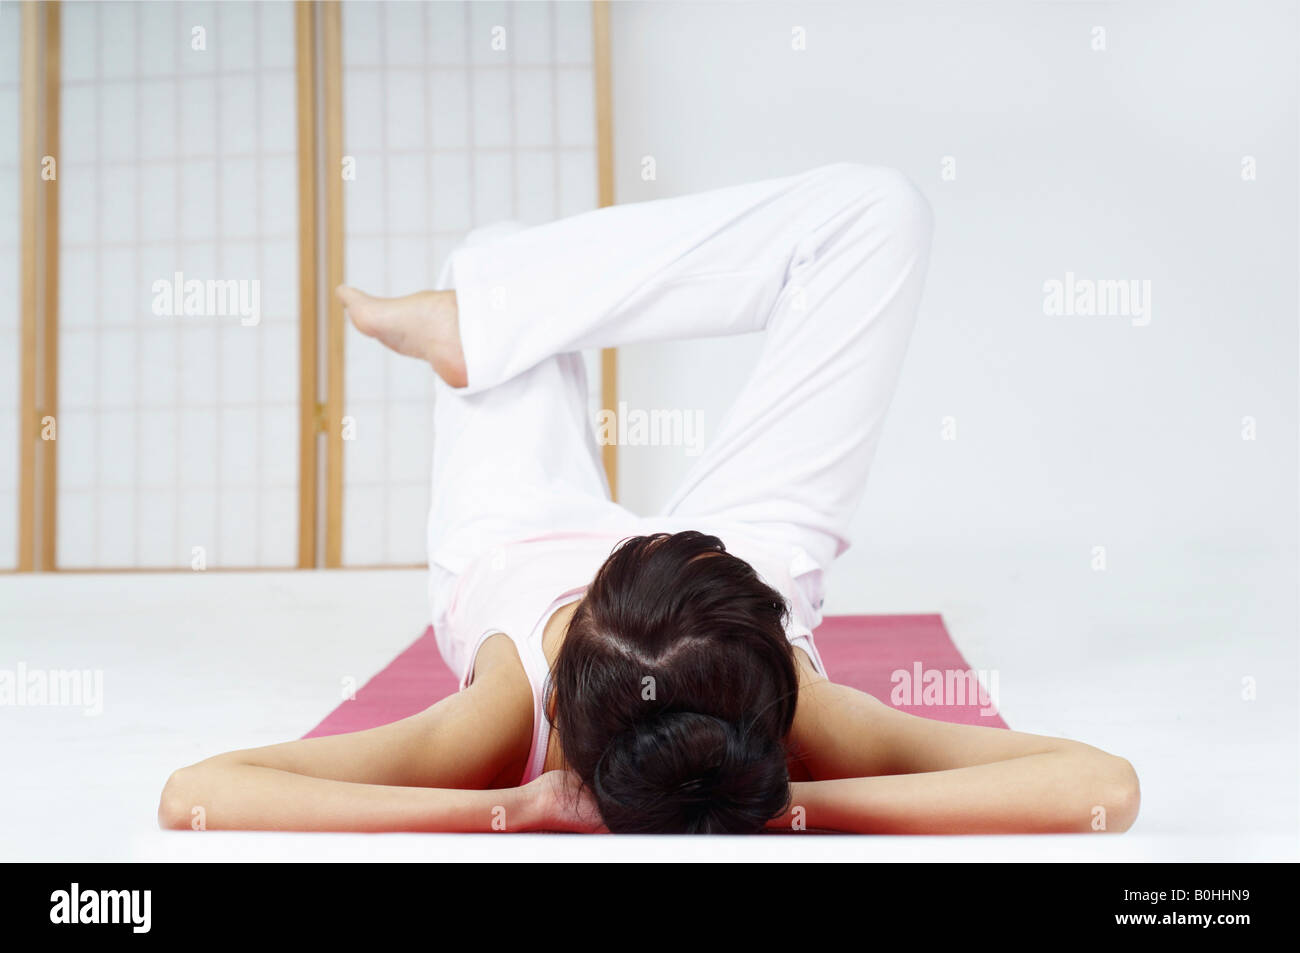 Young woman relaxing and meditating Stock Photo